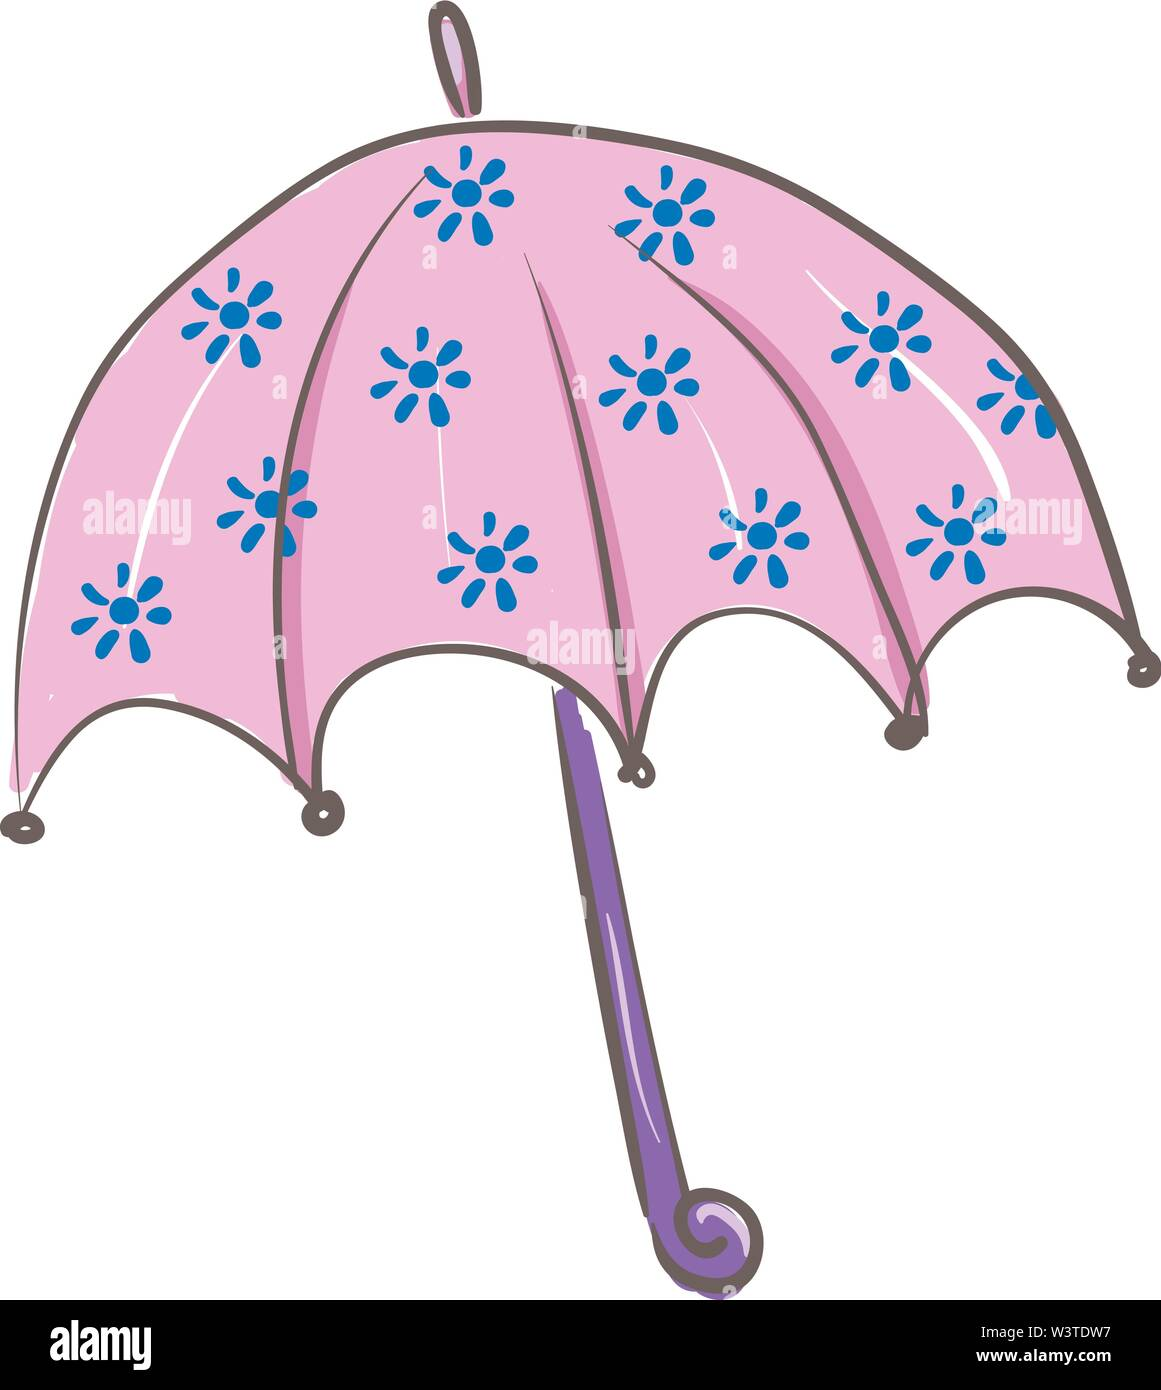 A Purple Colored Umbrella With A Blue Colored Flower Design Vector Color Drawing Or Illustration Stock Vector Image Art Alamy